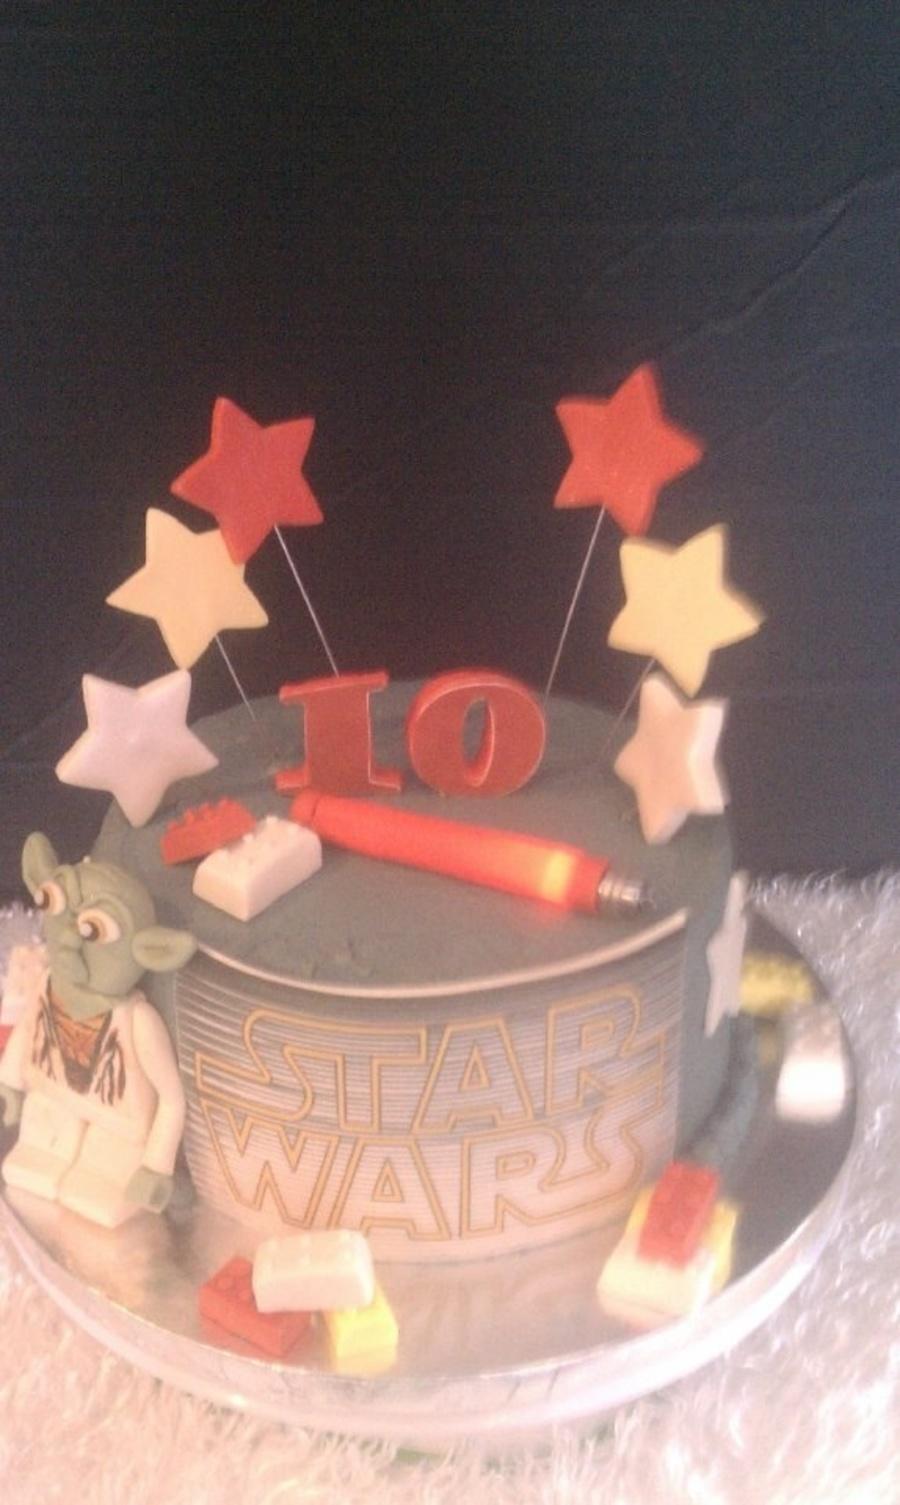 Wondrous Lego Star Wars Cake With Light Up Lightsaber Cakecentral Com Funny Birthday Cards Online Sheoxdamsfinfo